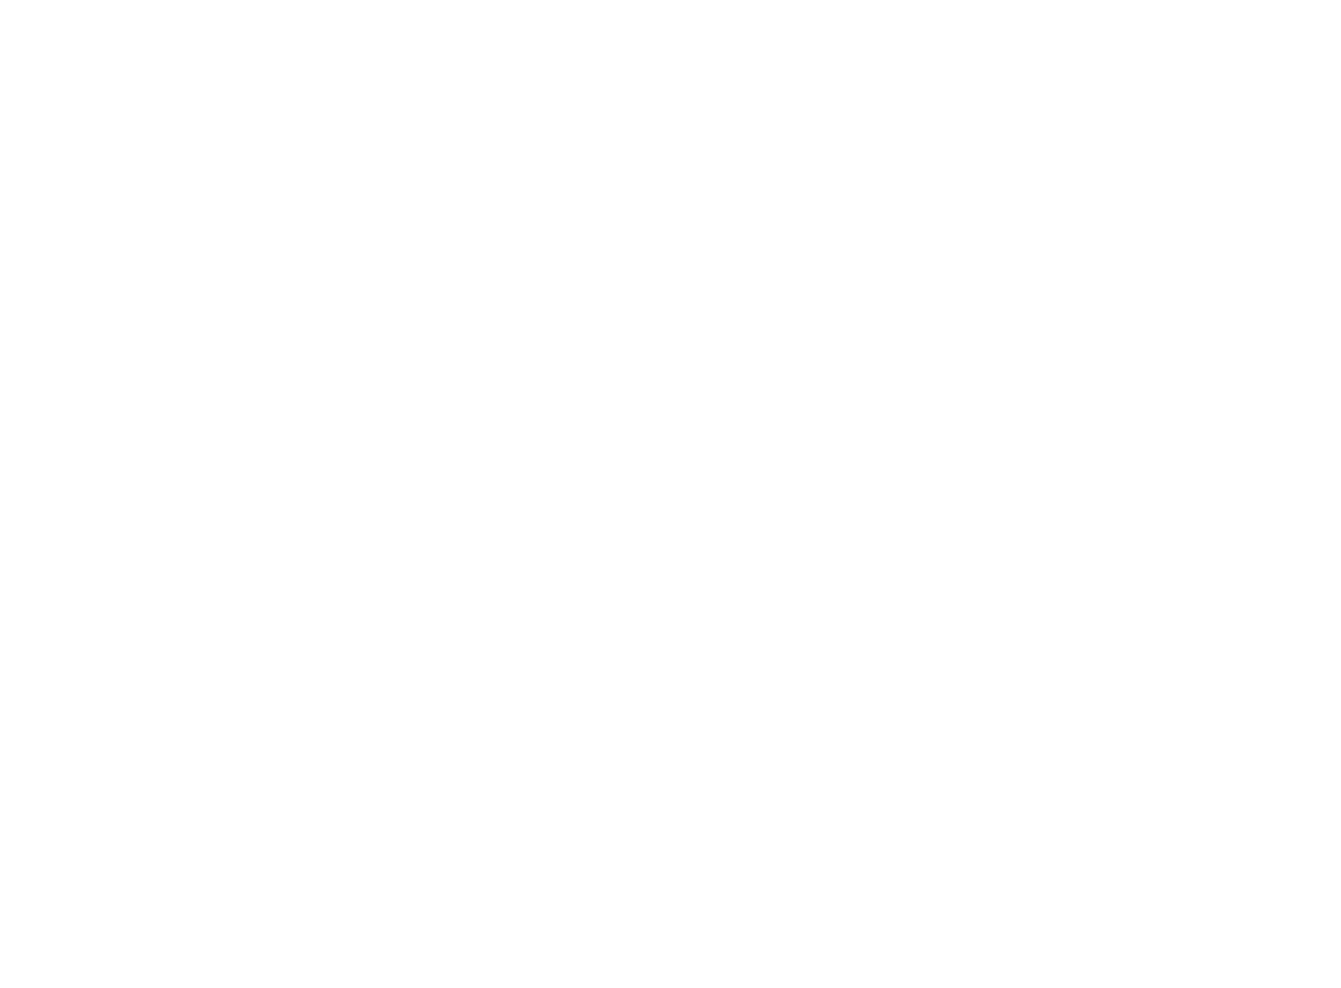 Circular Fashion Summit - by Lablaco